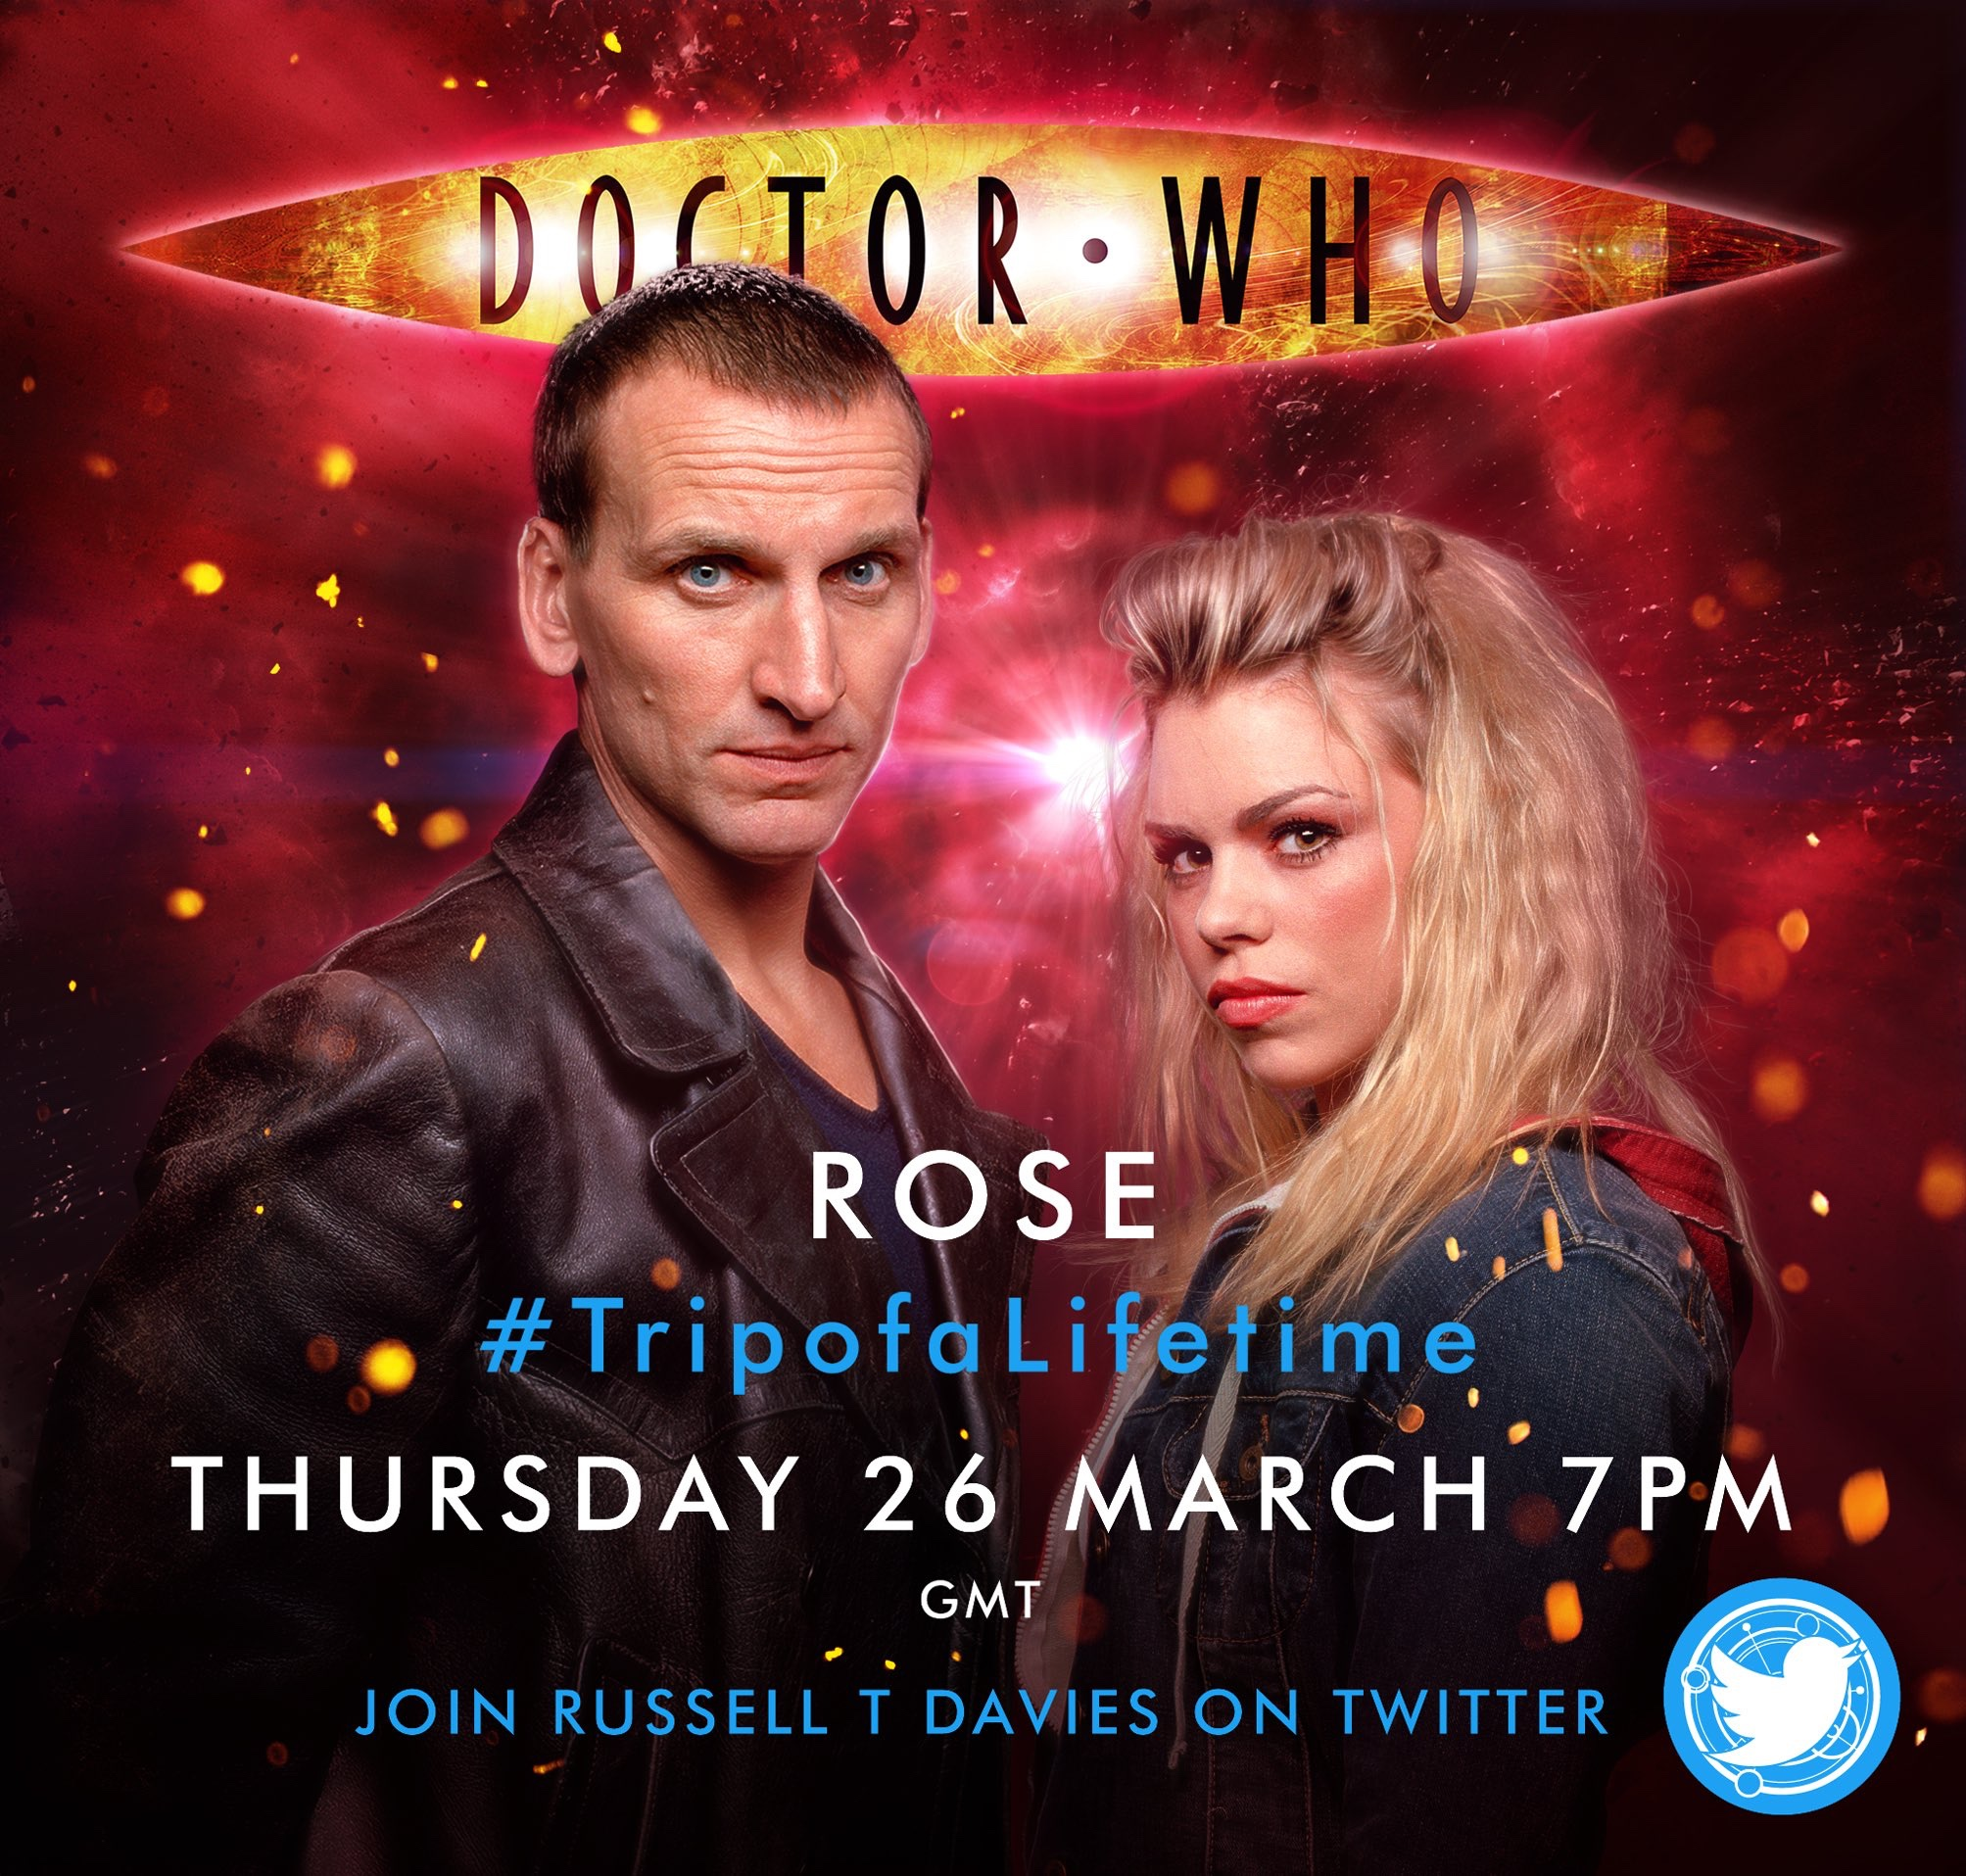 Doctor Who Rose: The Sequel Released Online